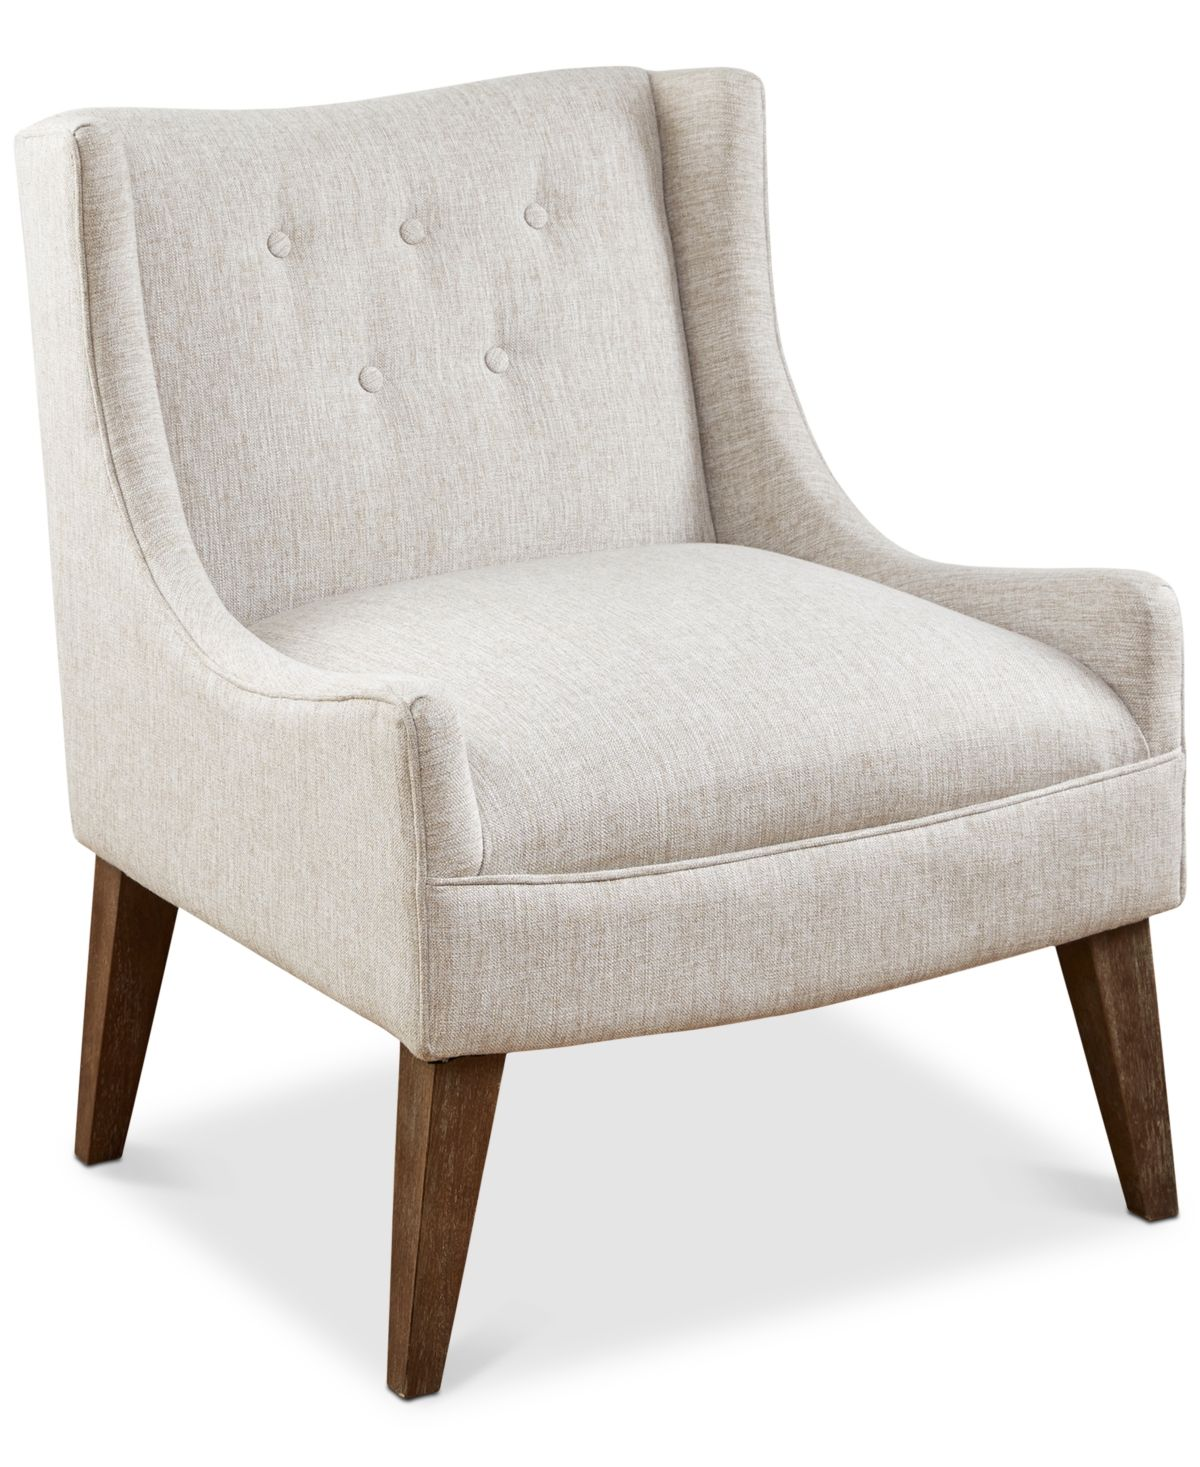 Furniture Macy Accent Chair Reviews Chairs Furniture